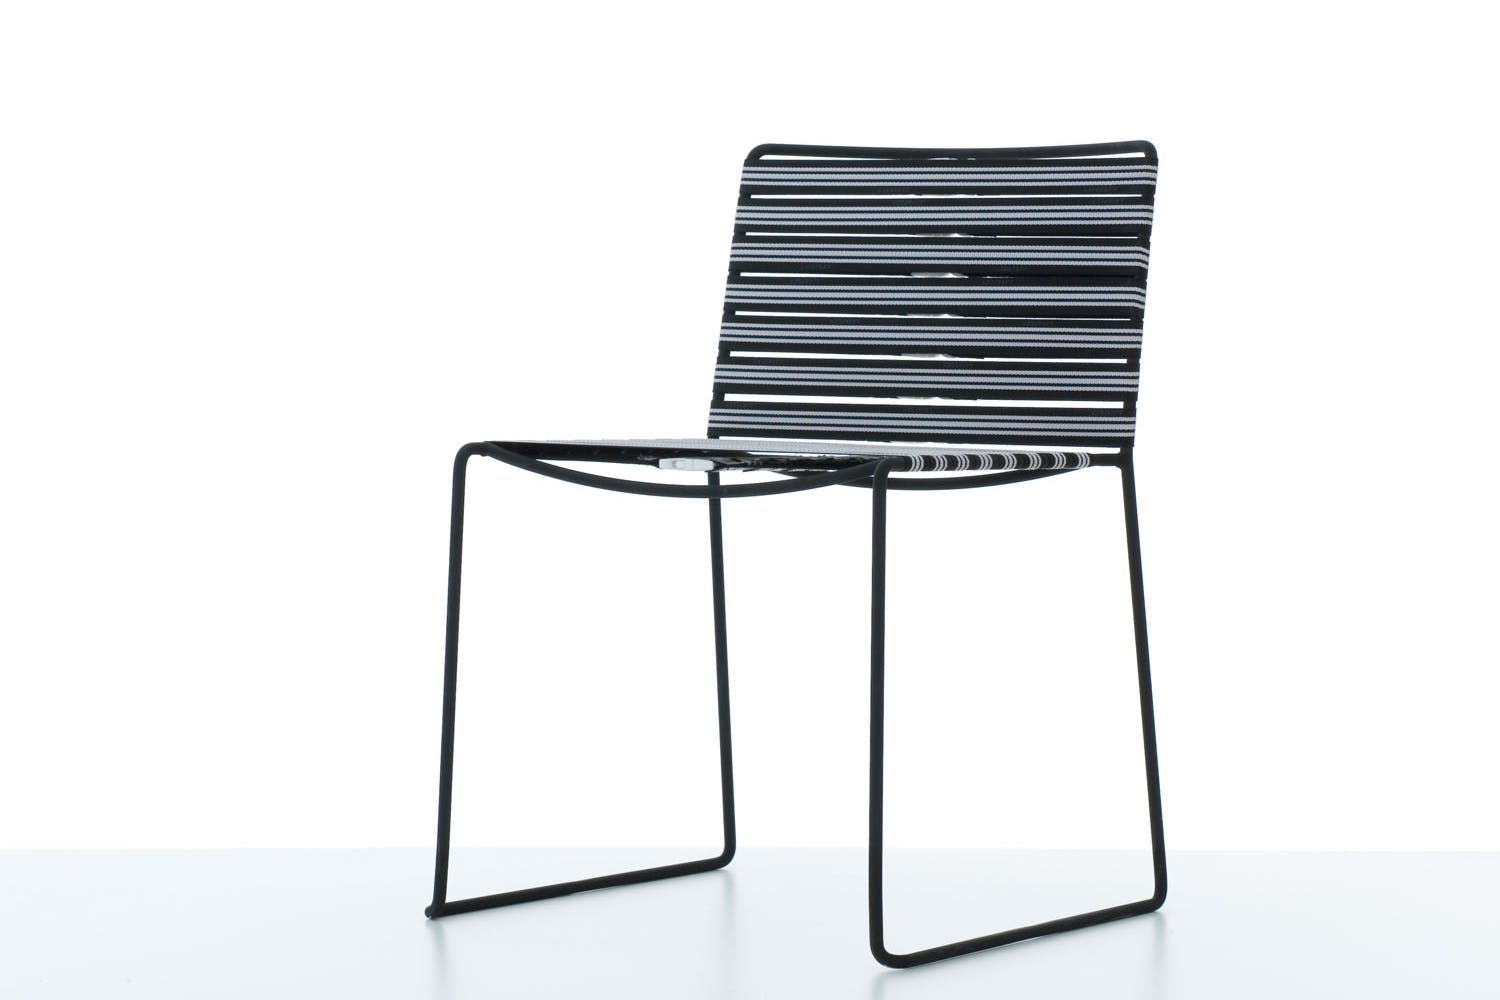 Spindle Chair By Piero Lissoni For Porro